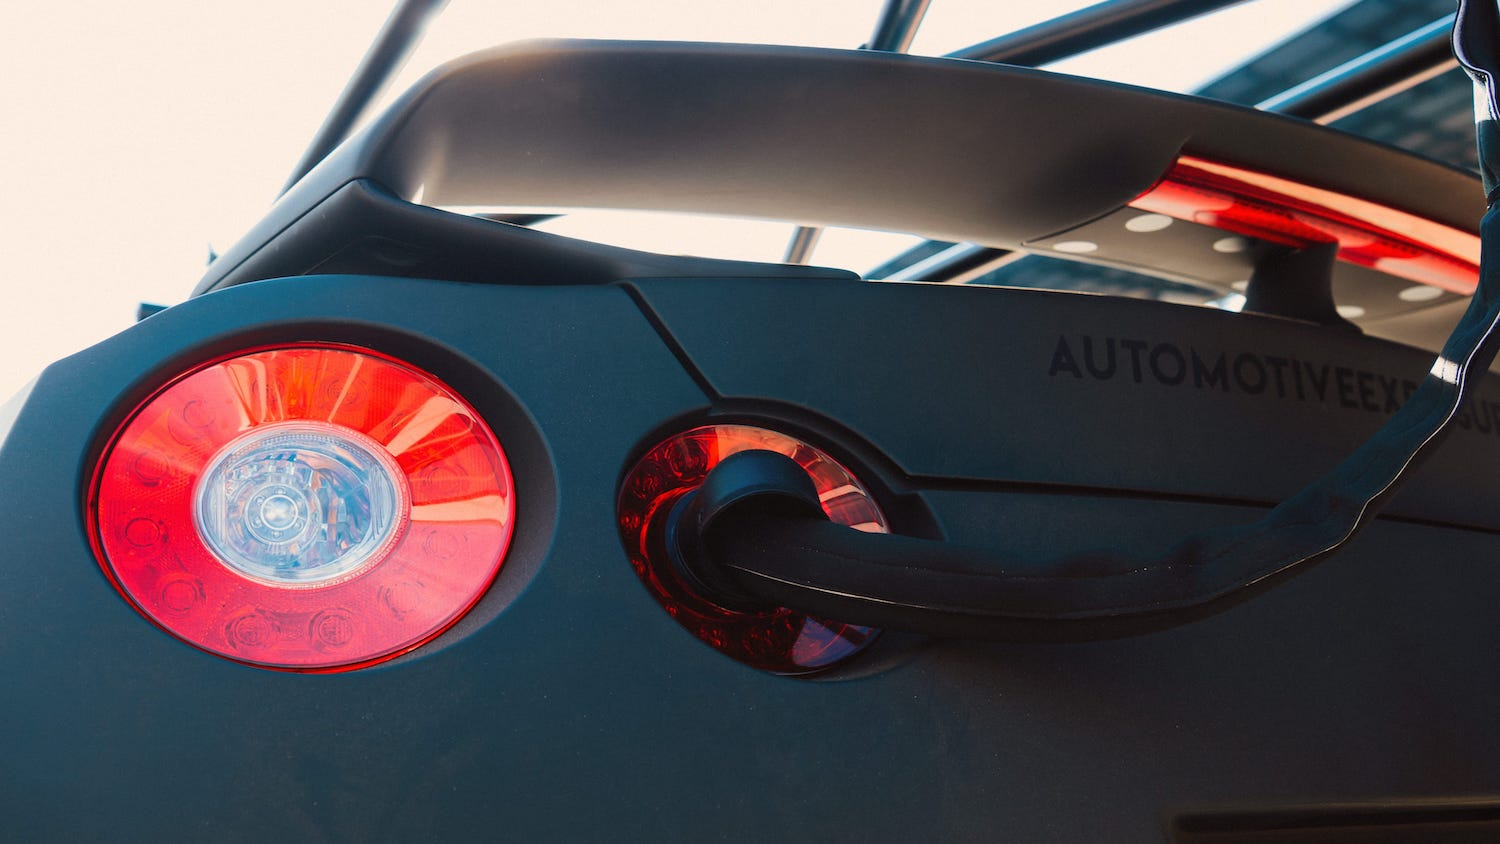 nissan gtr camera car taillight mount closeup